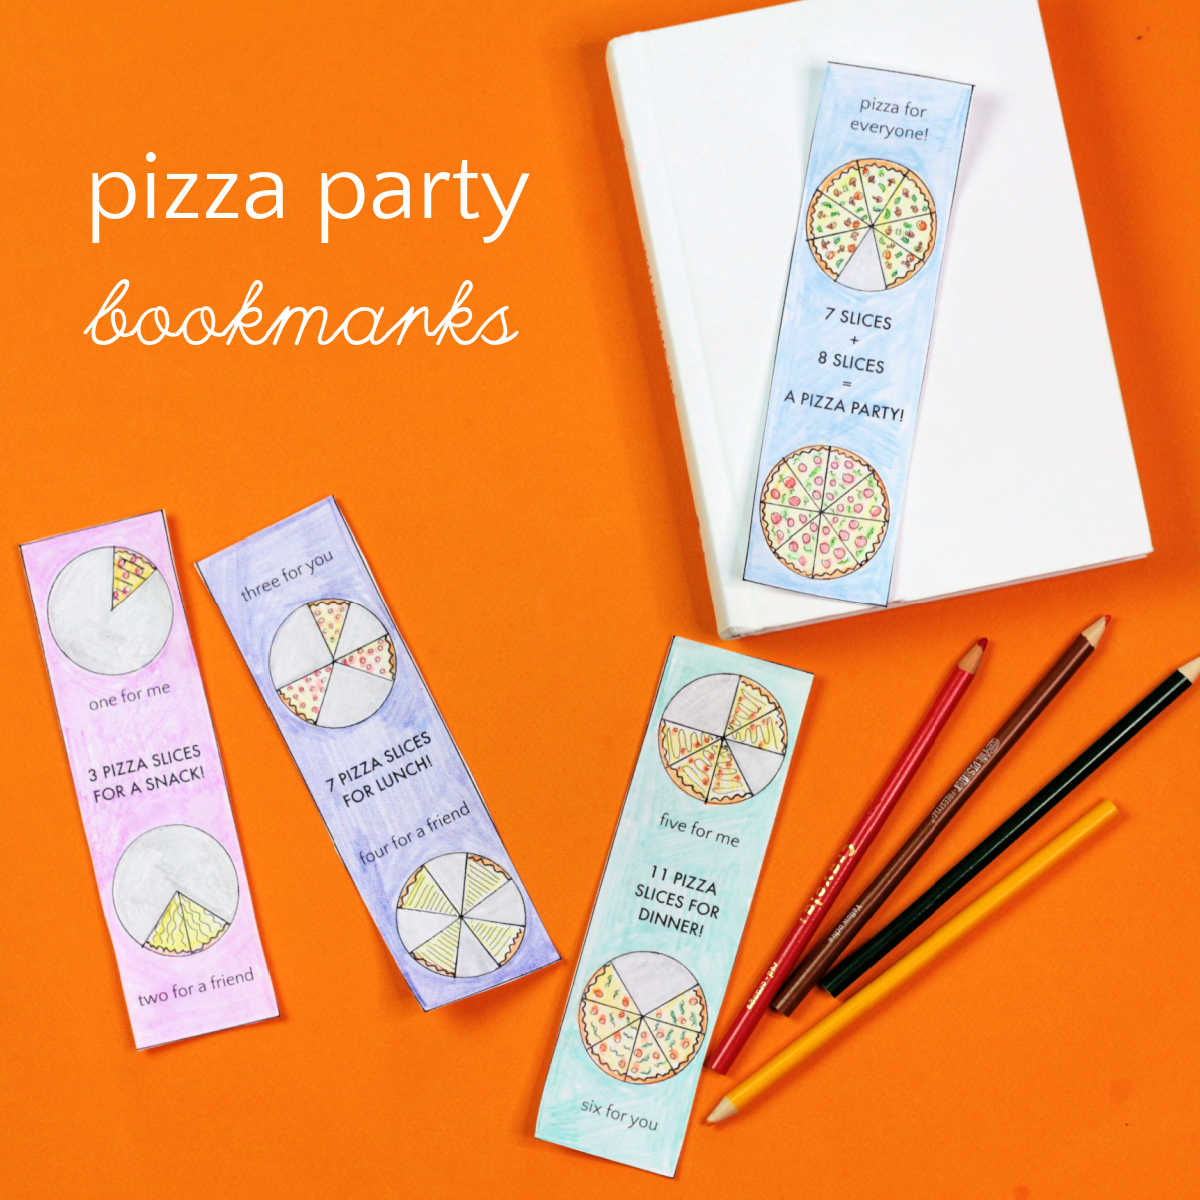 pizza party bookmarks and white book on orange background